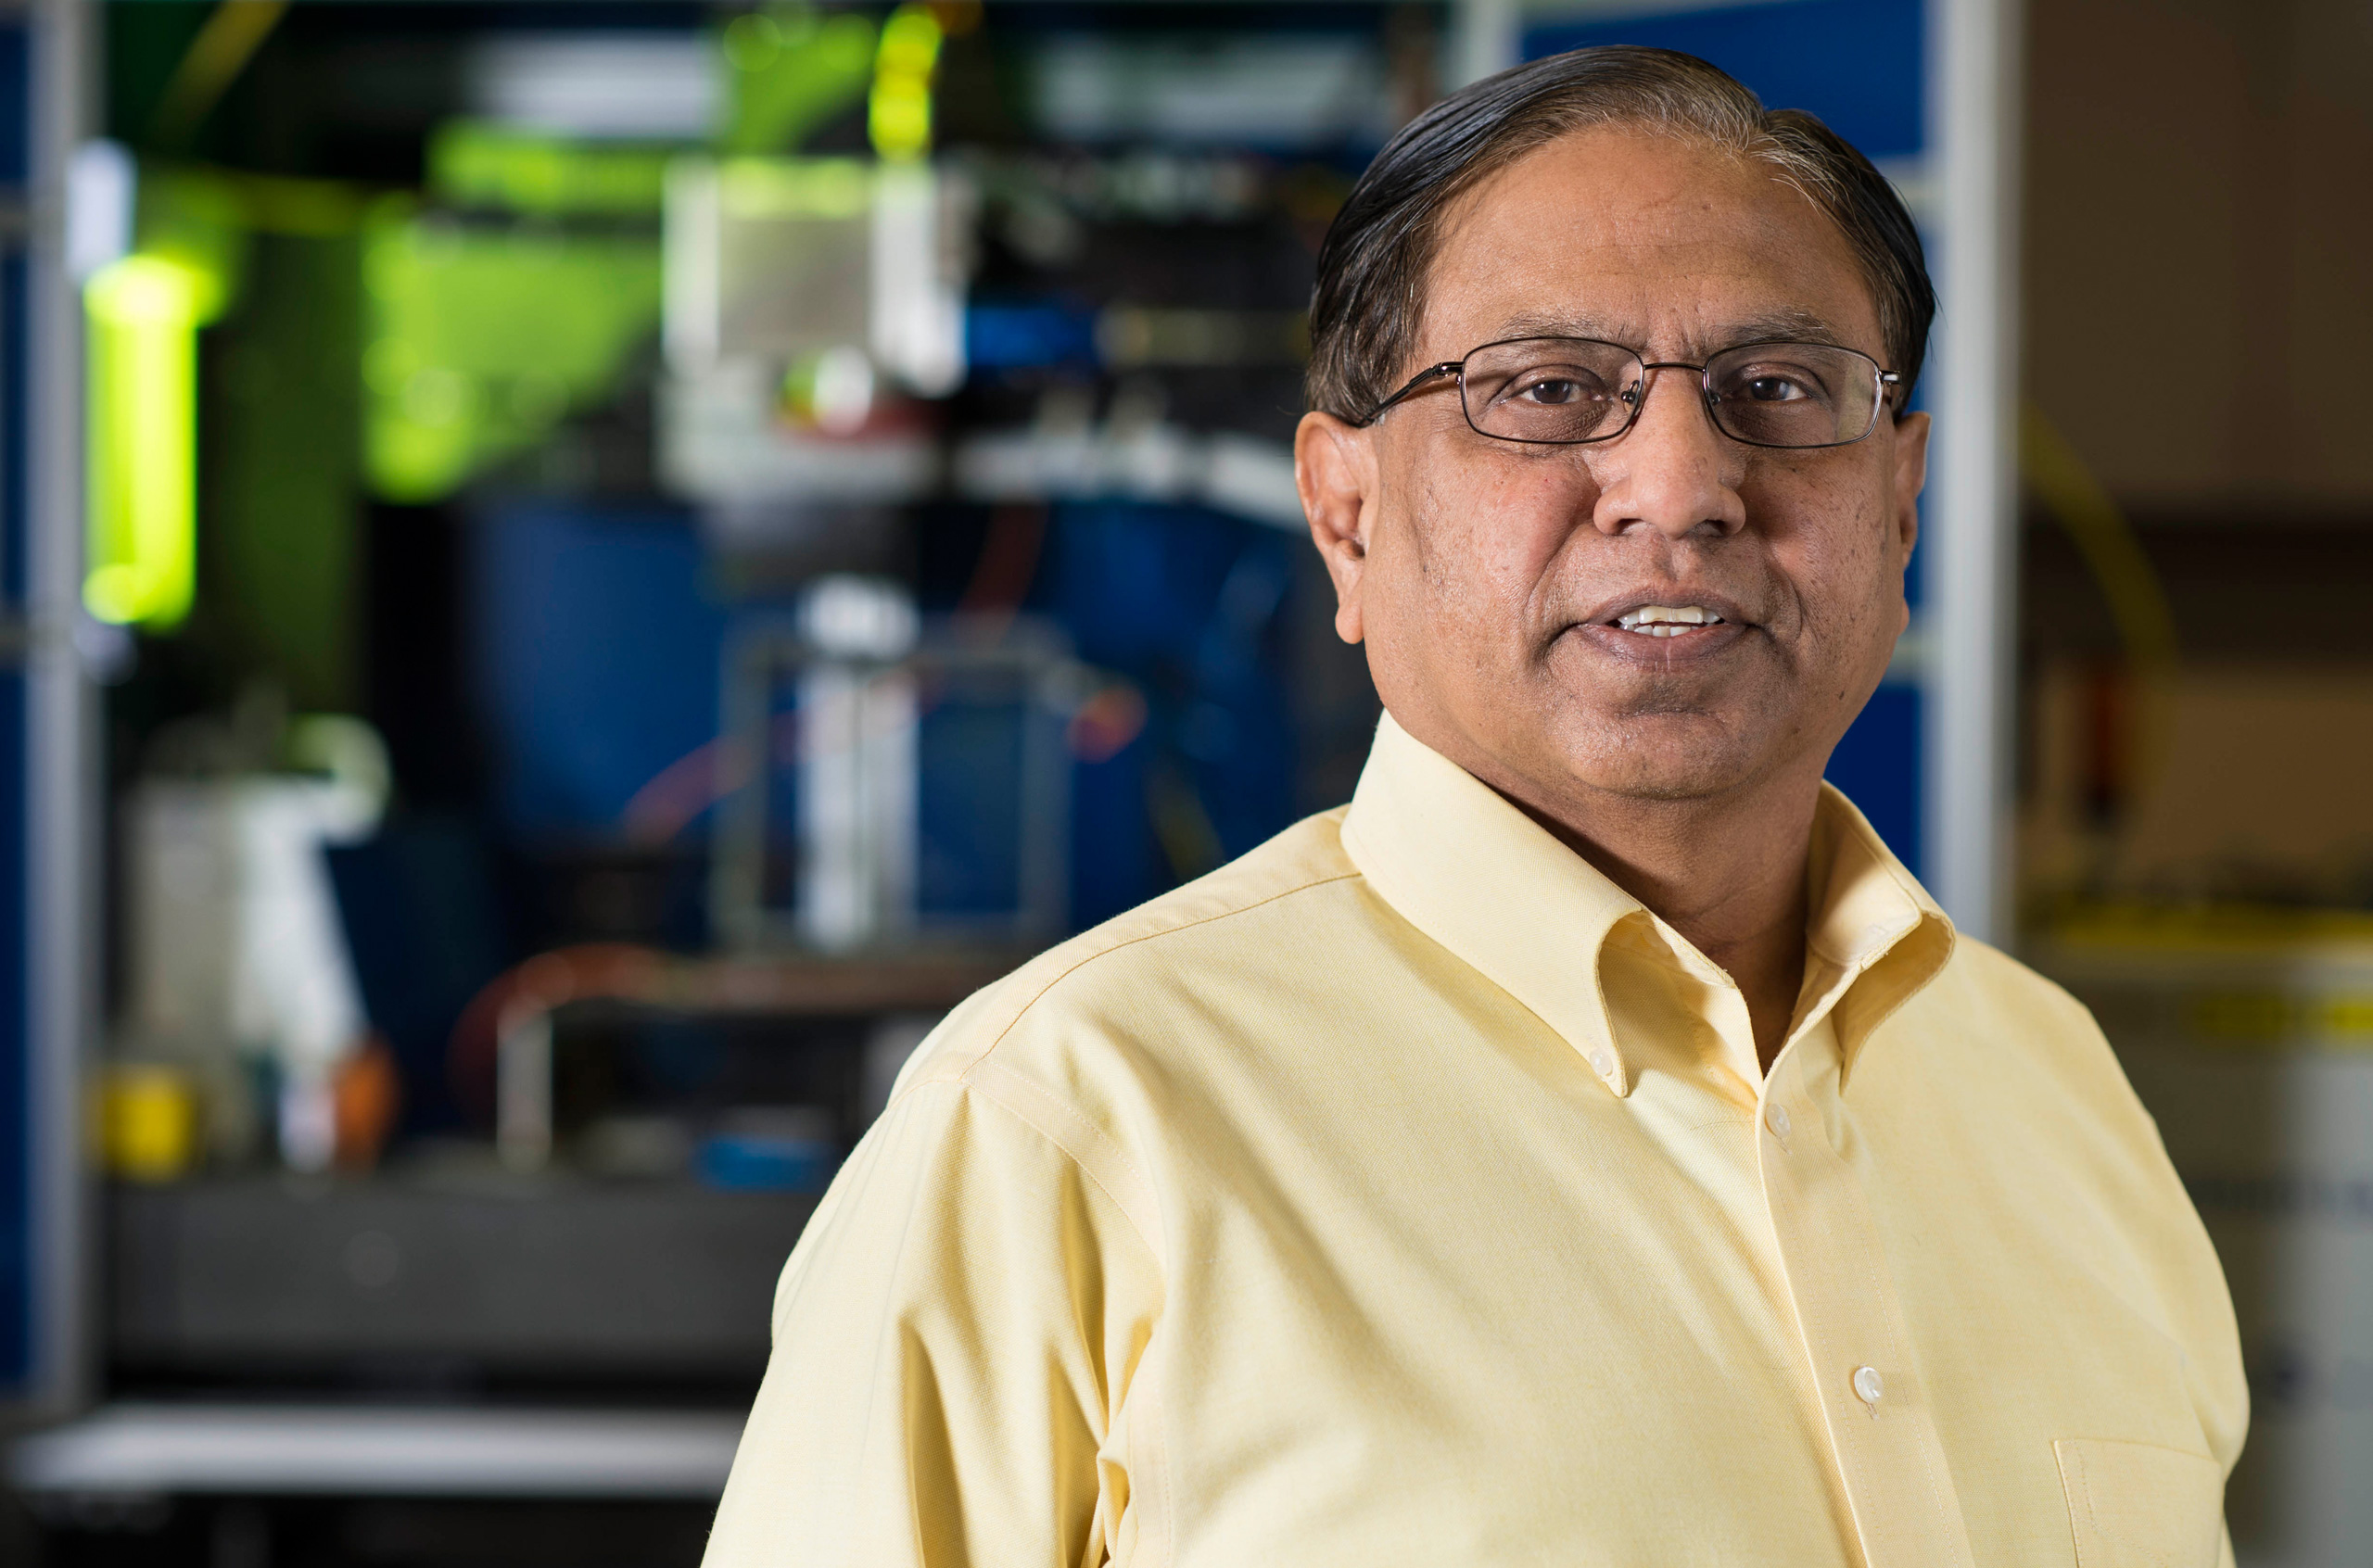 Narendra Dahotre is the newly appointed interim associate vice president of research and innovation at the University of North Texas.